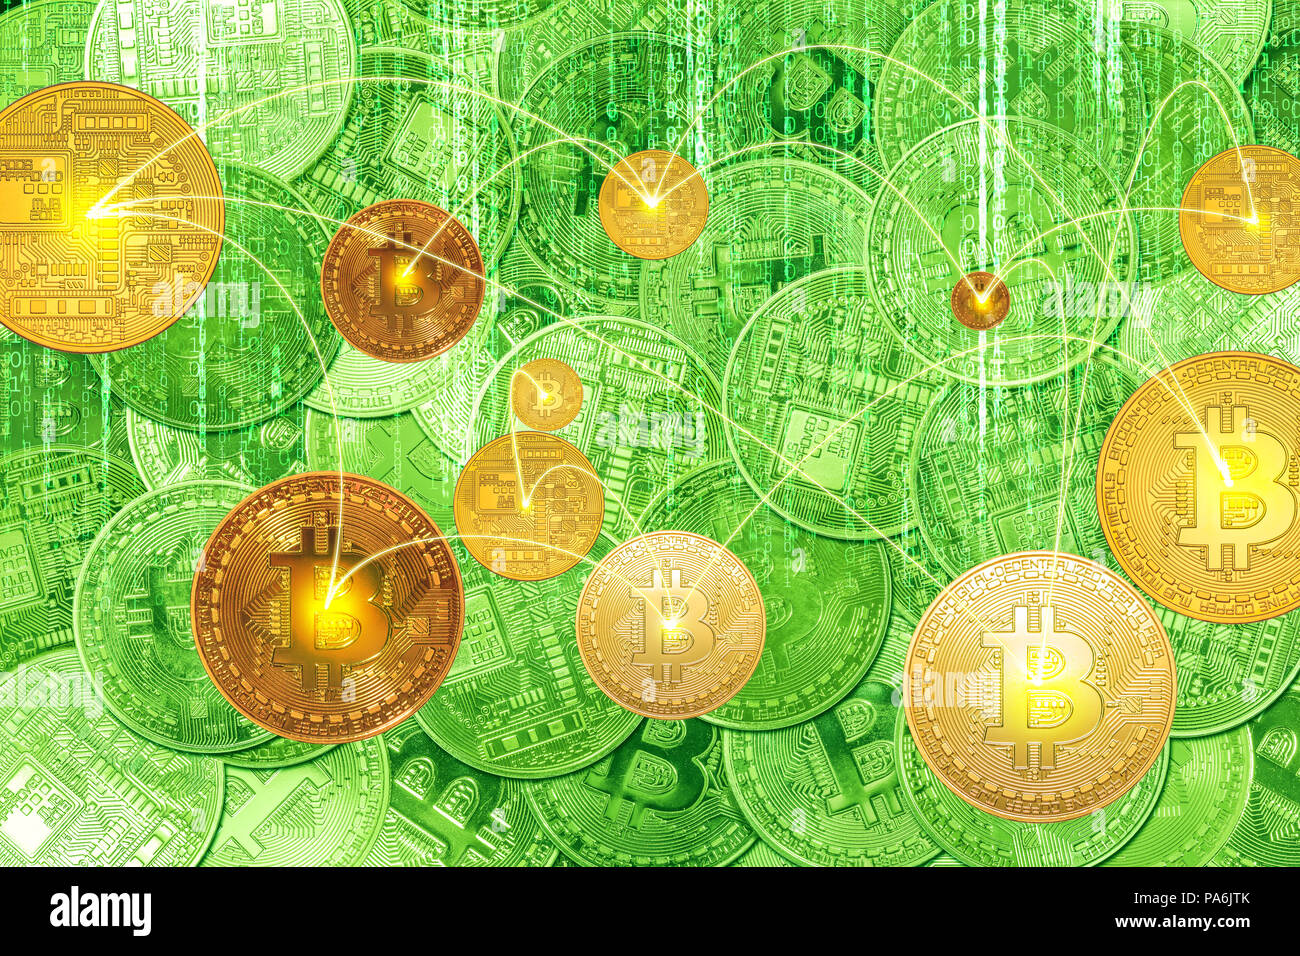 Digital connectivity between golden bitcoins and crypto-currency transactions. The financial matrix background for the new virtual money exchange. - Stock Image